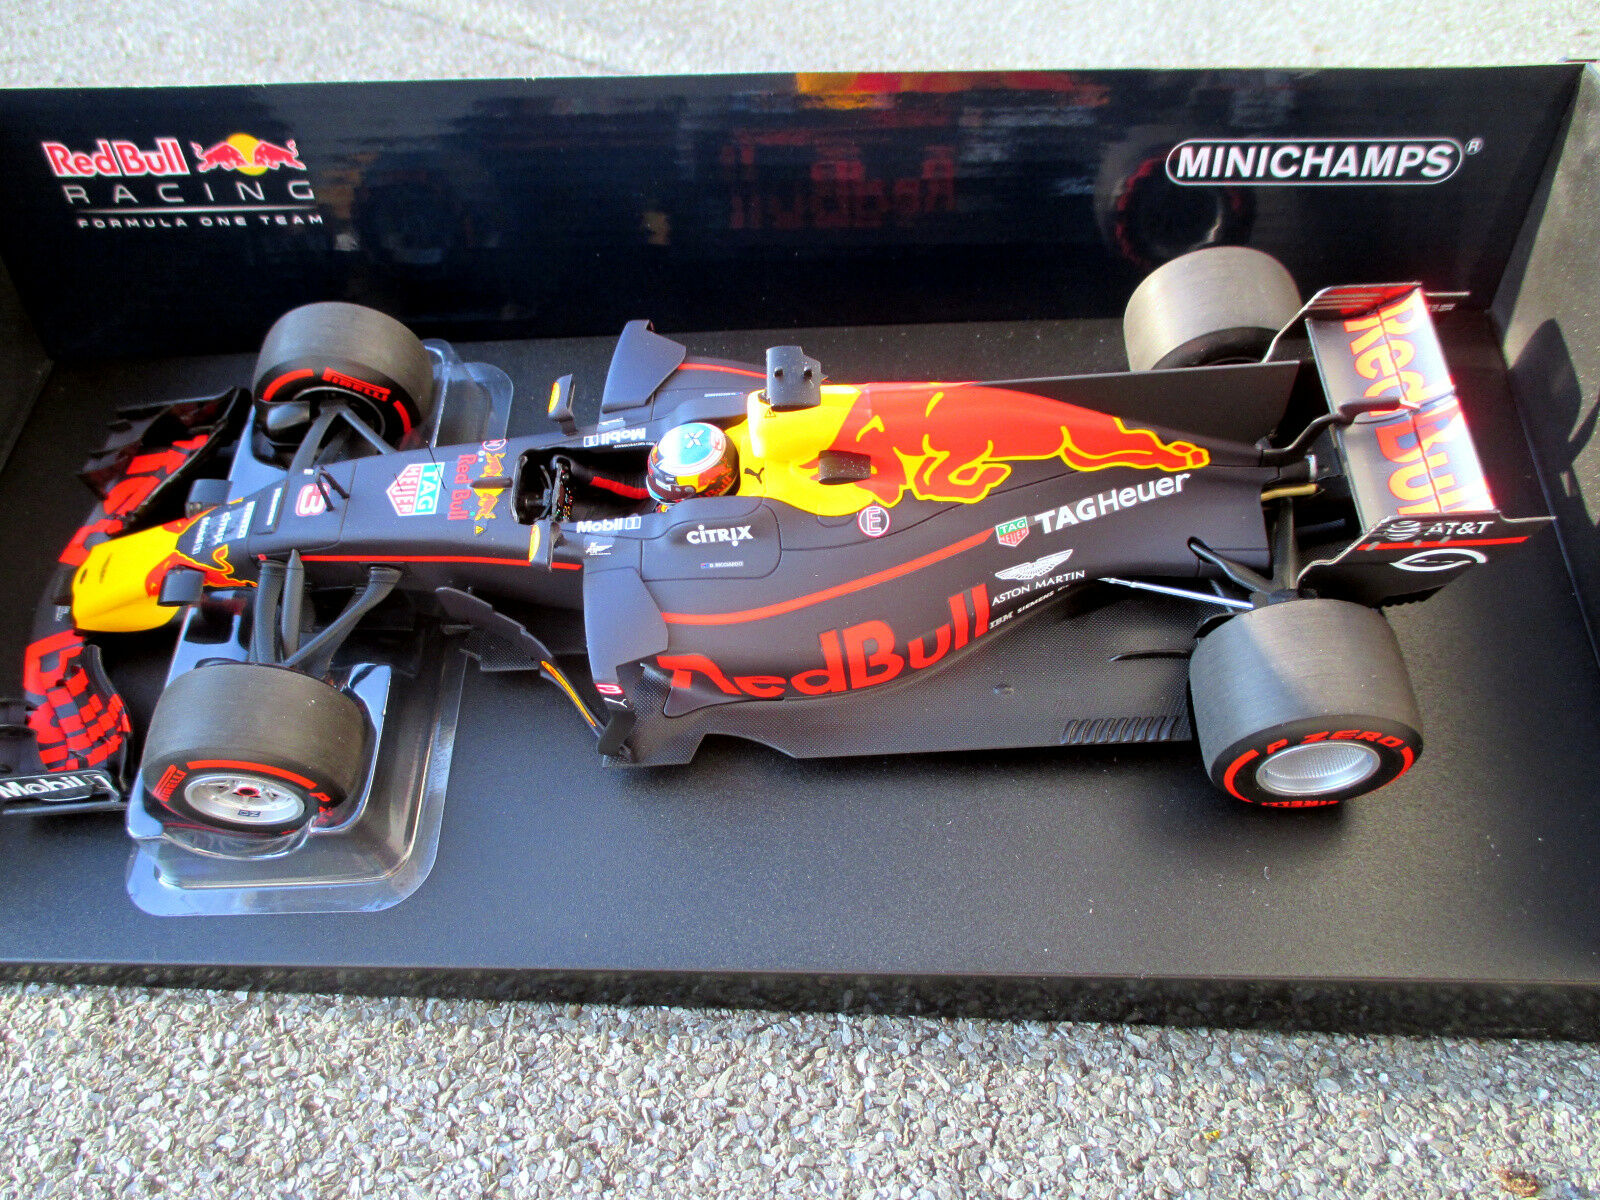 1 18 rouge BULL RACING rb13  3 D. Ricciardo GP Australie'17 MINICHAMPS 110 170003